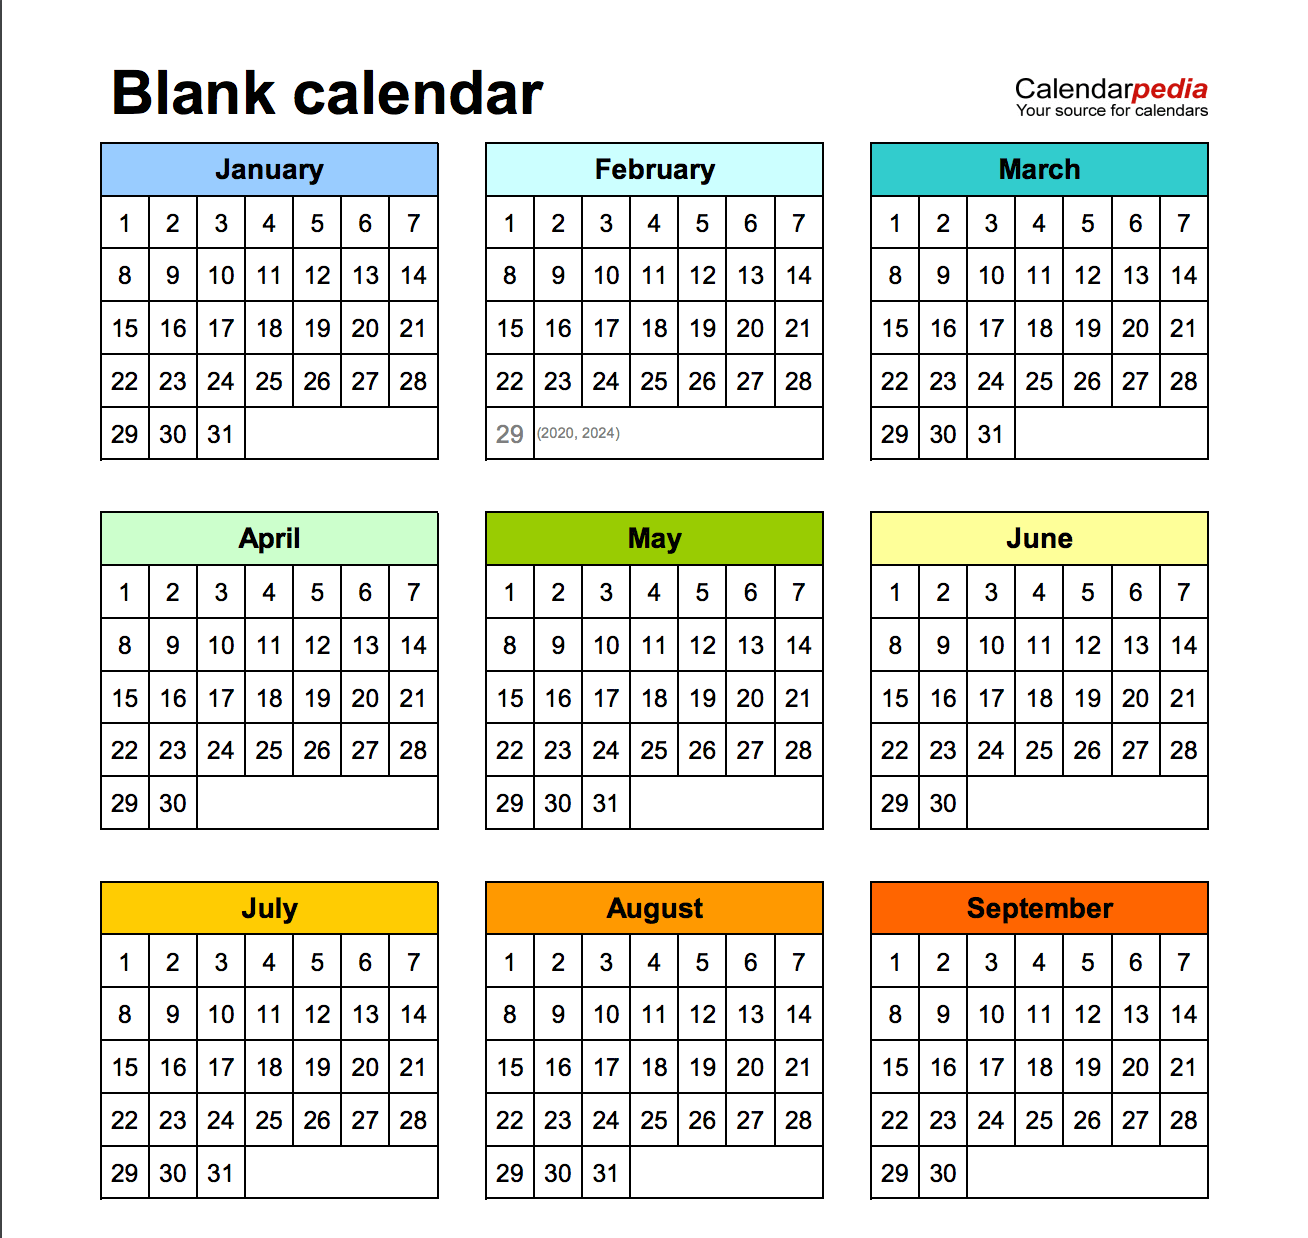 Printable blank calendar templates for Word in 9 different layouts (free)